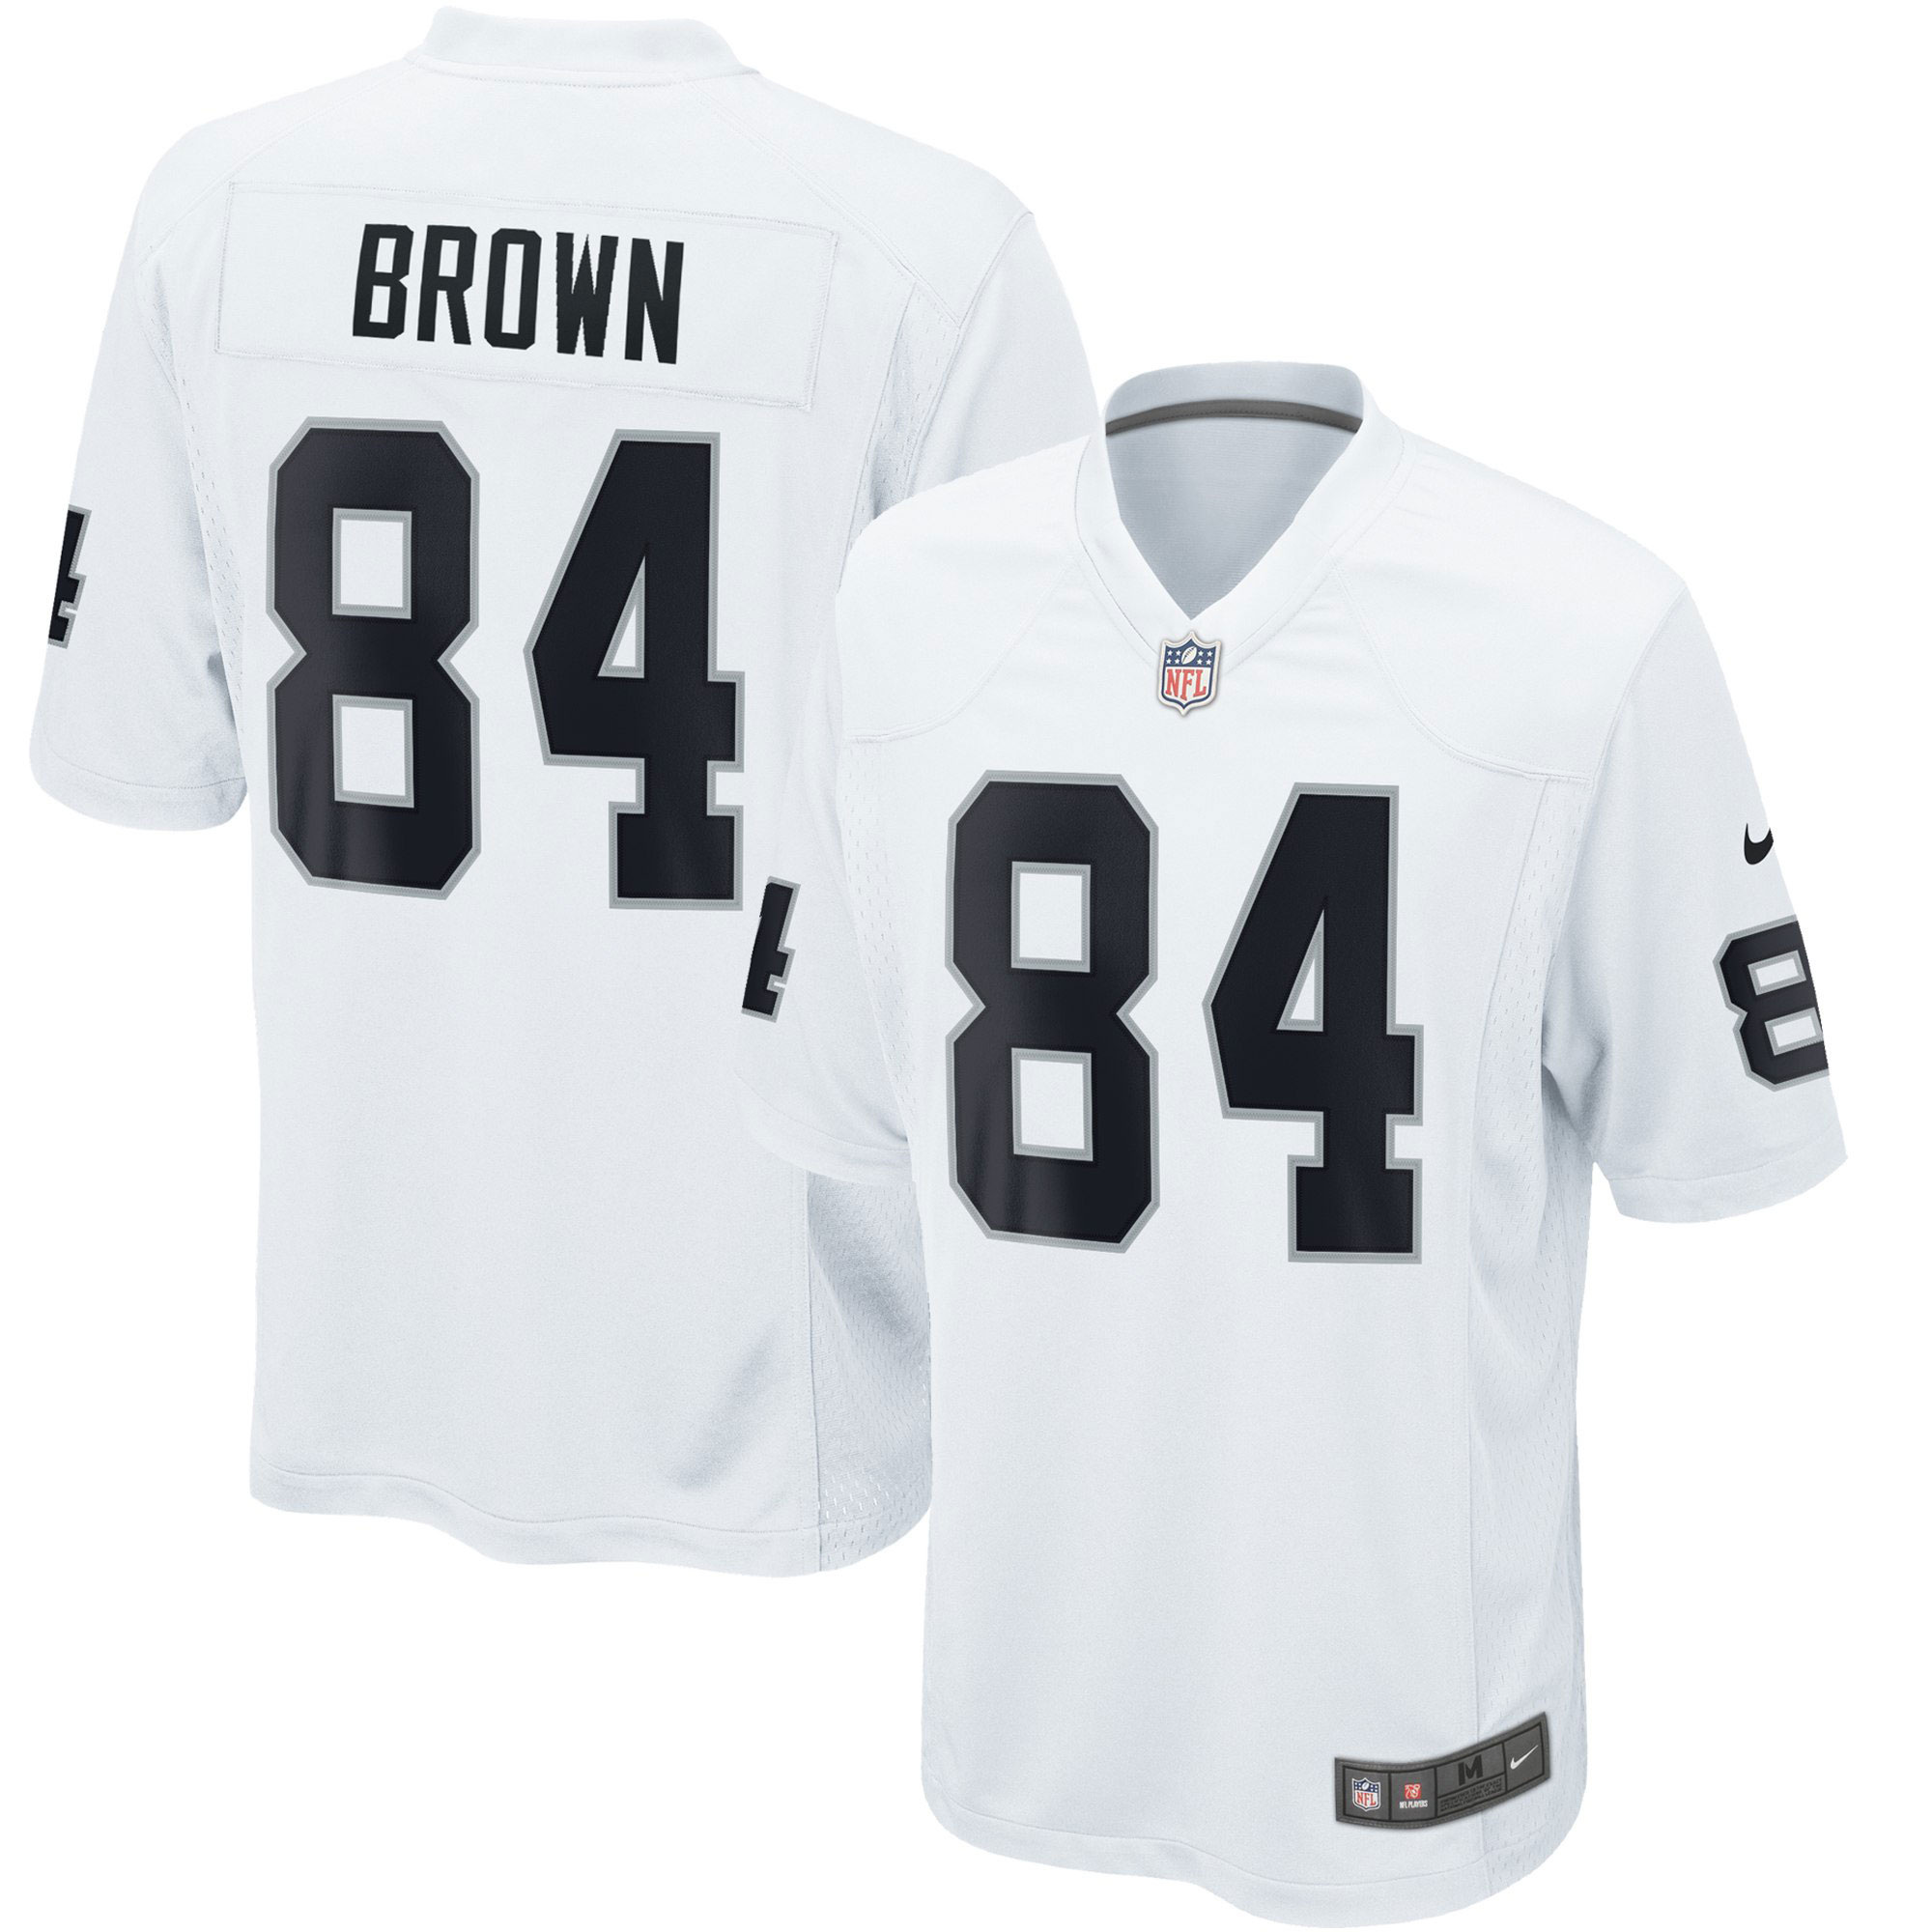 Road Game Jersey - Antonio Brown - Youth